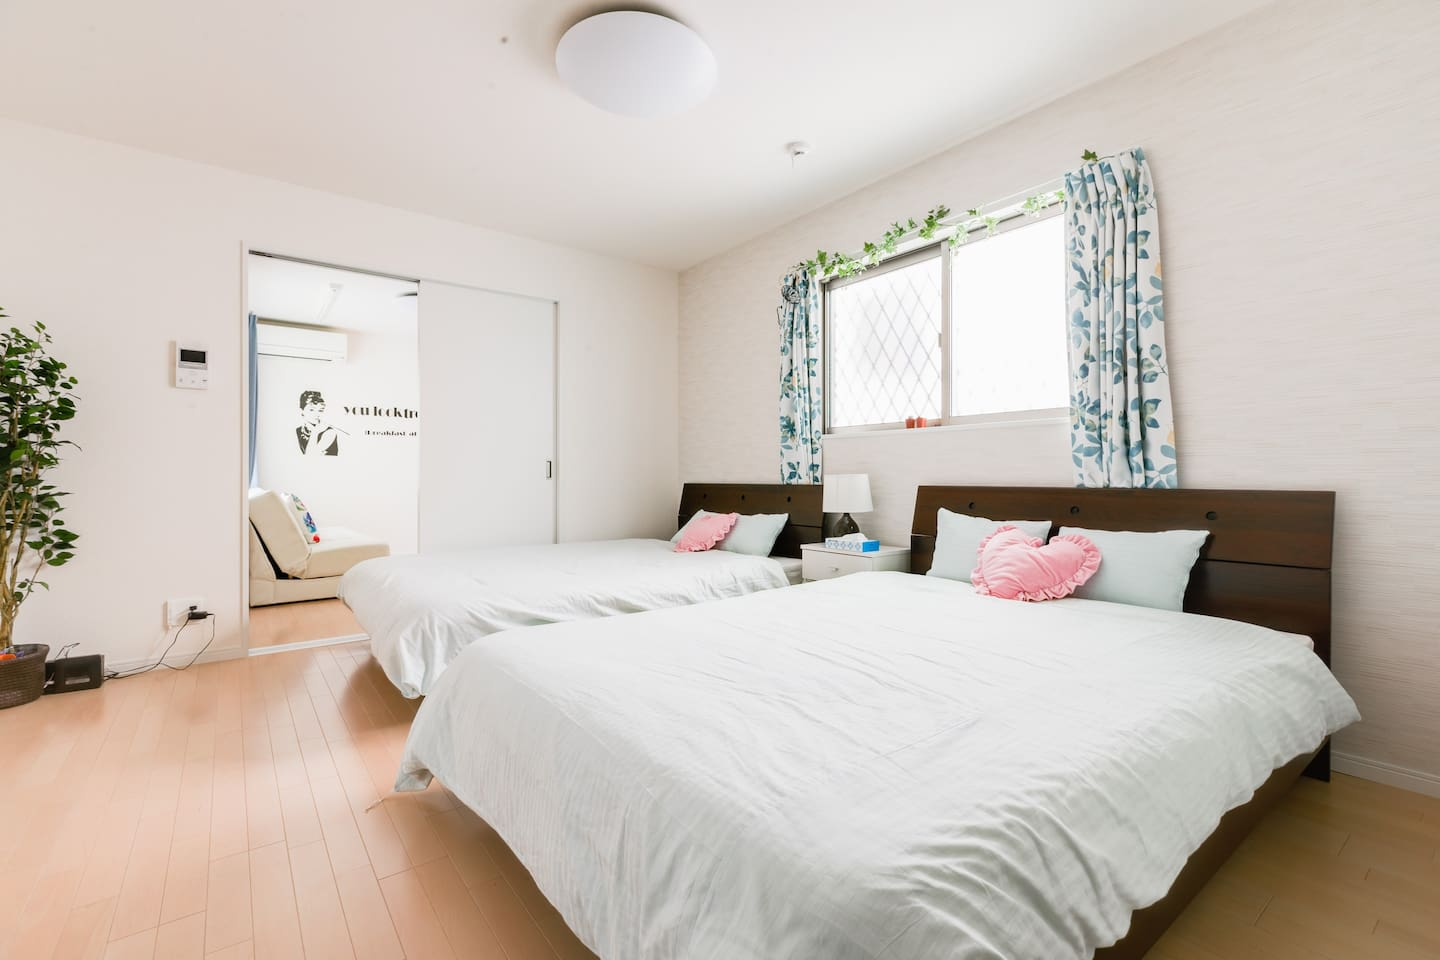 New Apartment with 2 Double Beds and Sofa Bed!